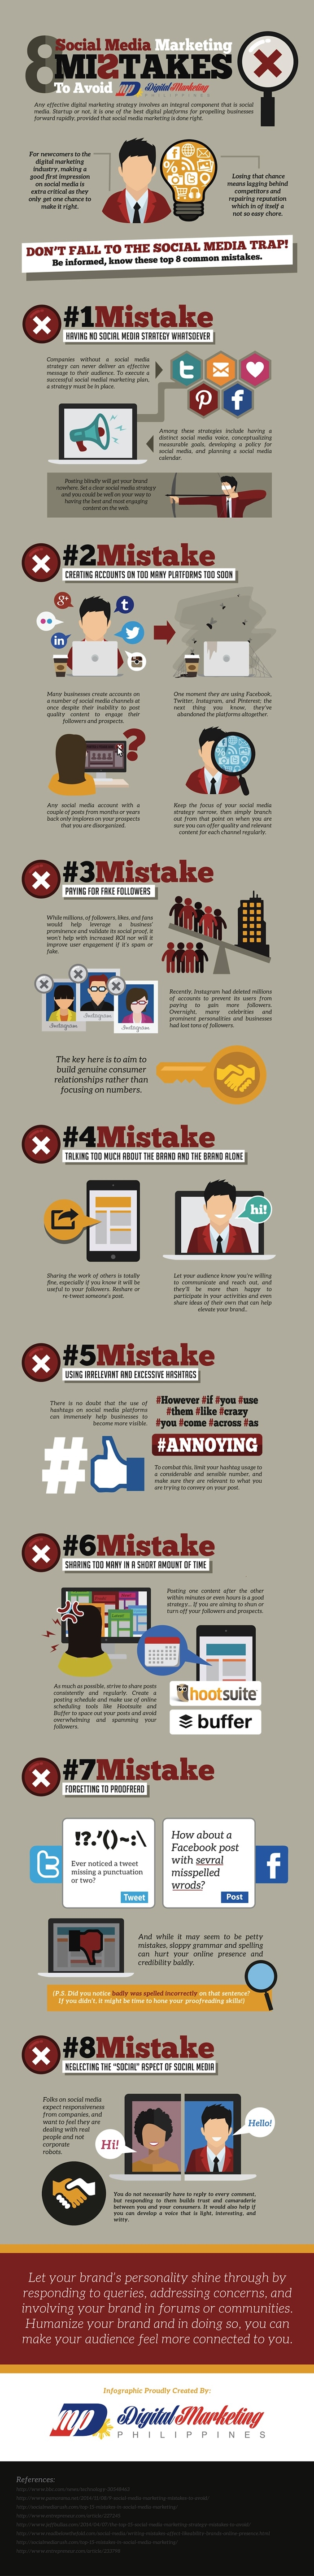 8-Social-Media-Marketing-Mistakes-to-Avoid-700